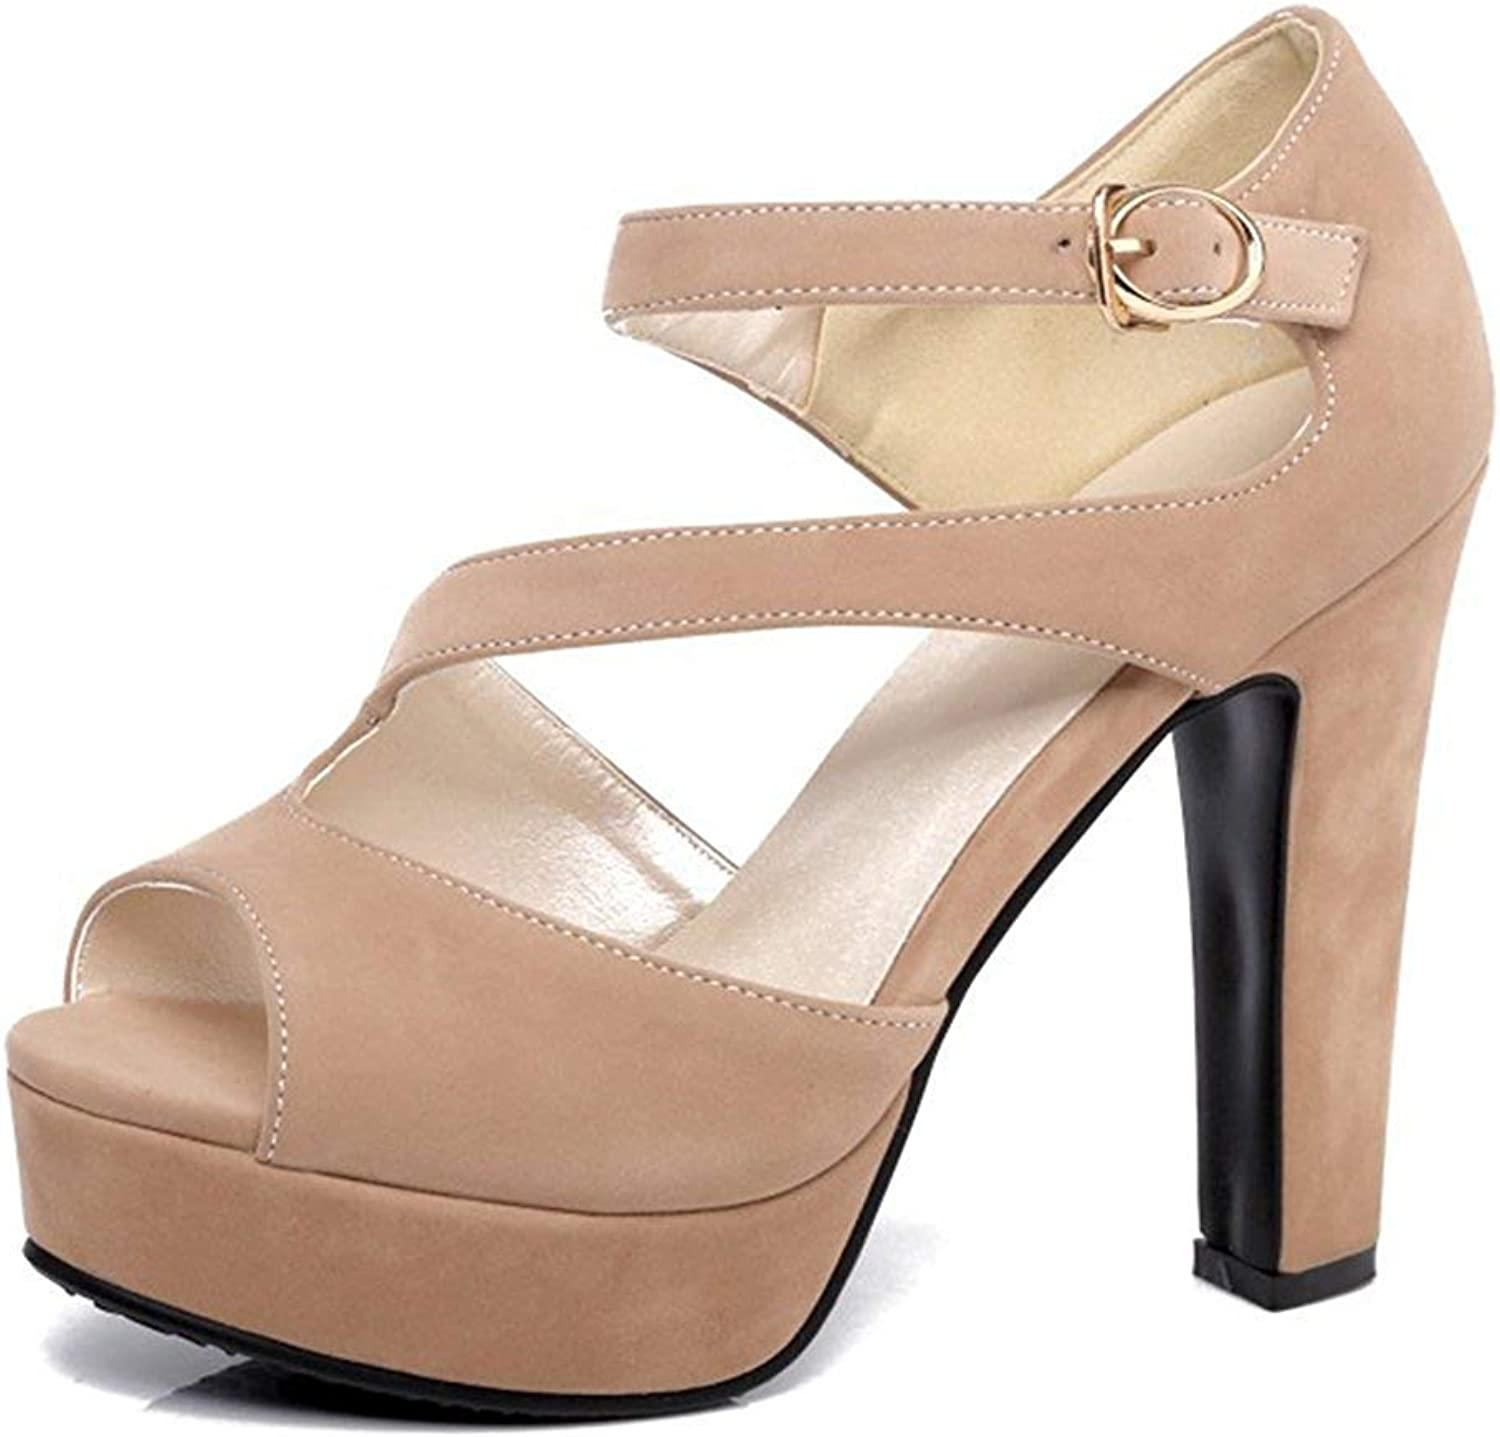 Unm Women's Peep Toe Sandals with Ankle Strap - Sexy Buckled High Heel - Platform Chunky shoes